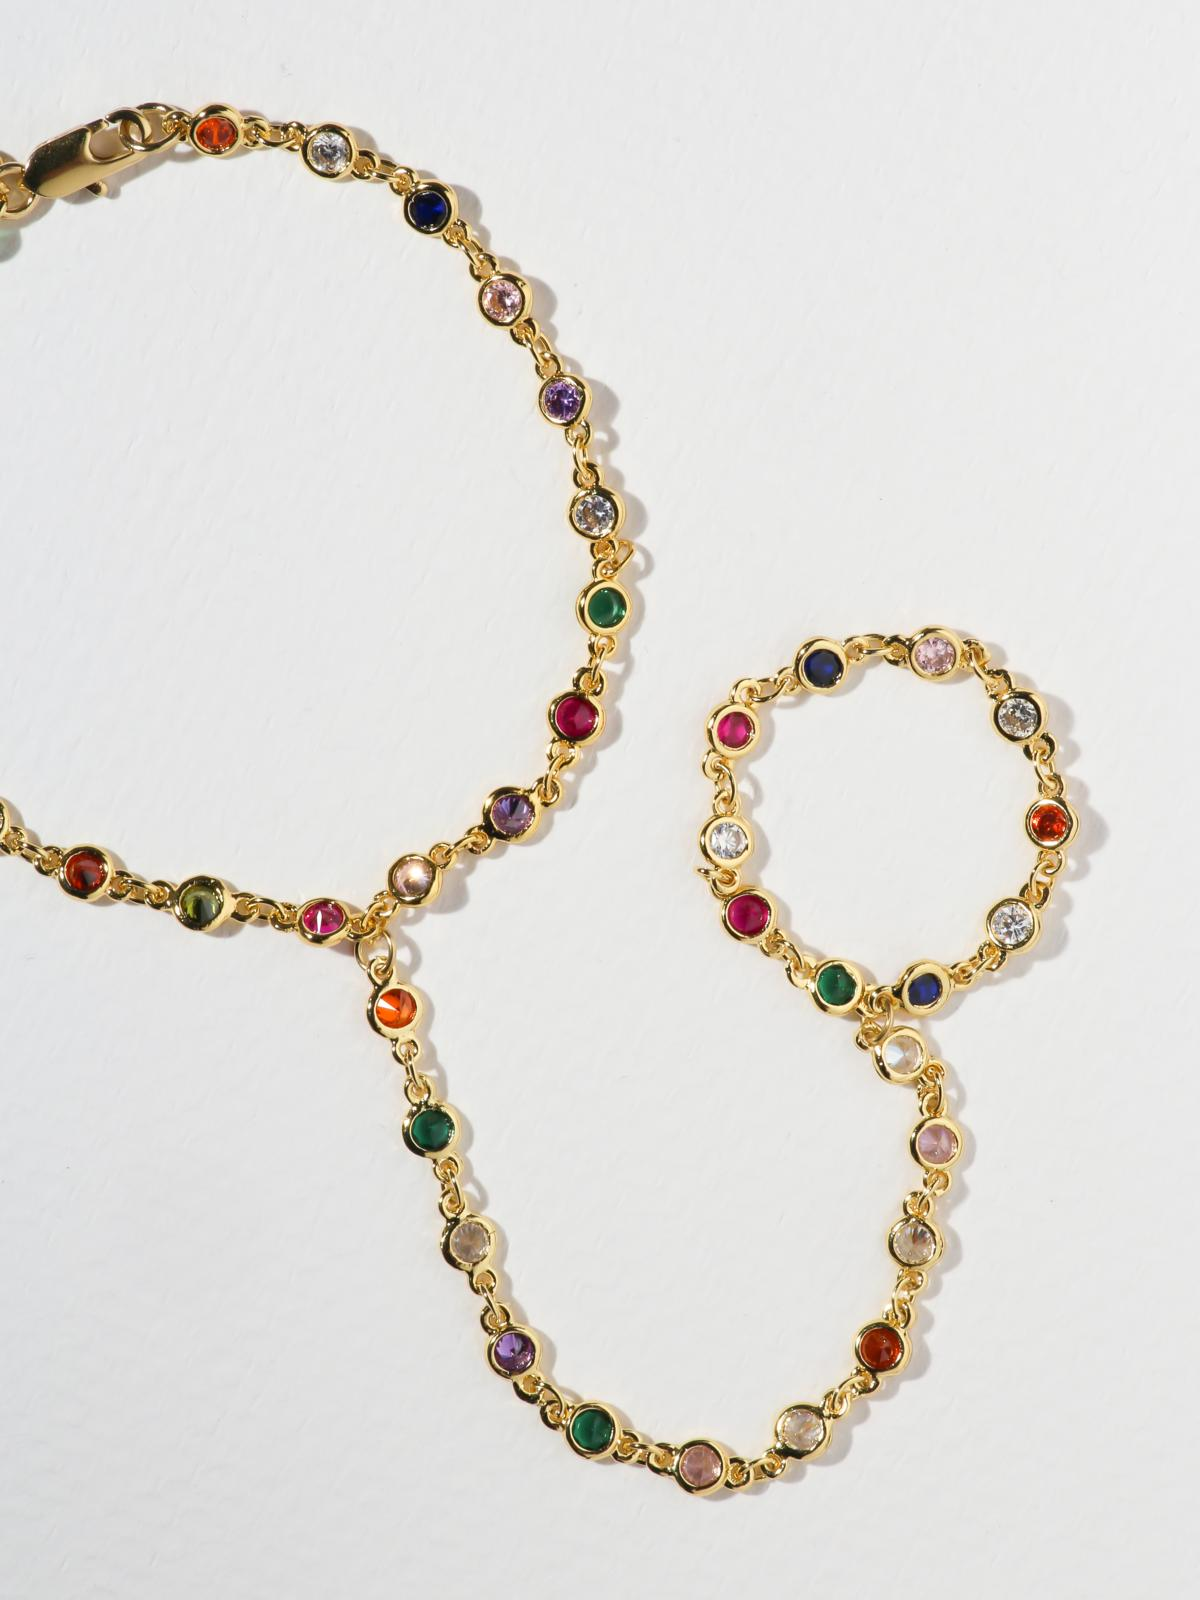 The Bejeweled Hand Chain